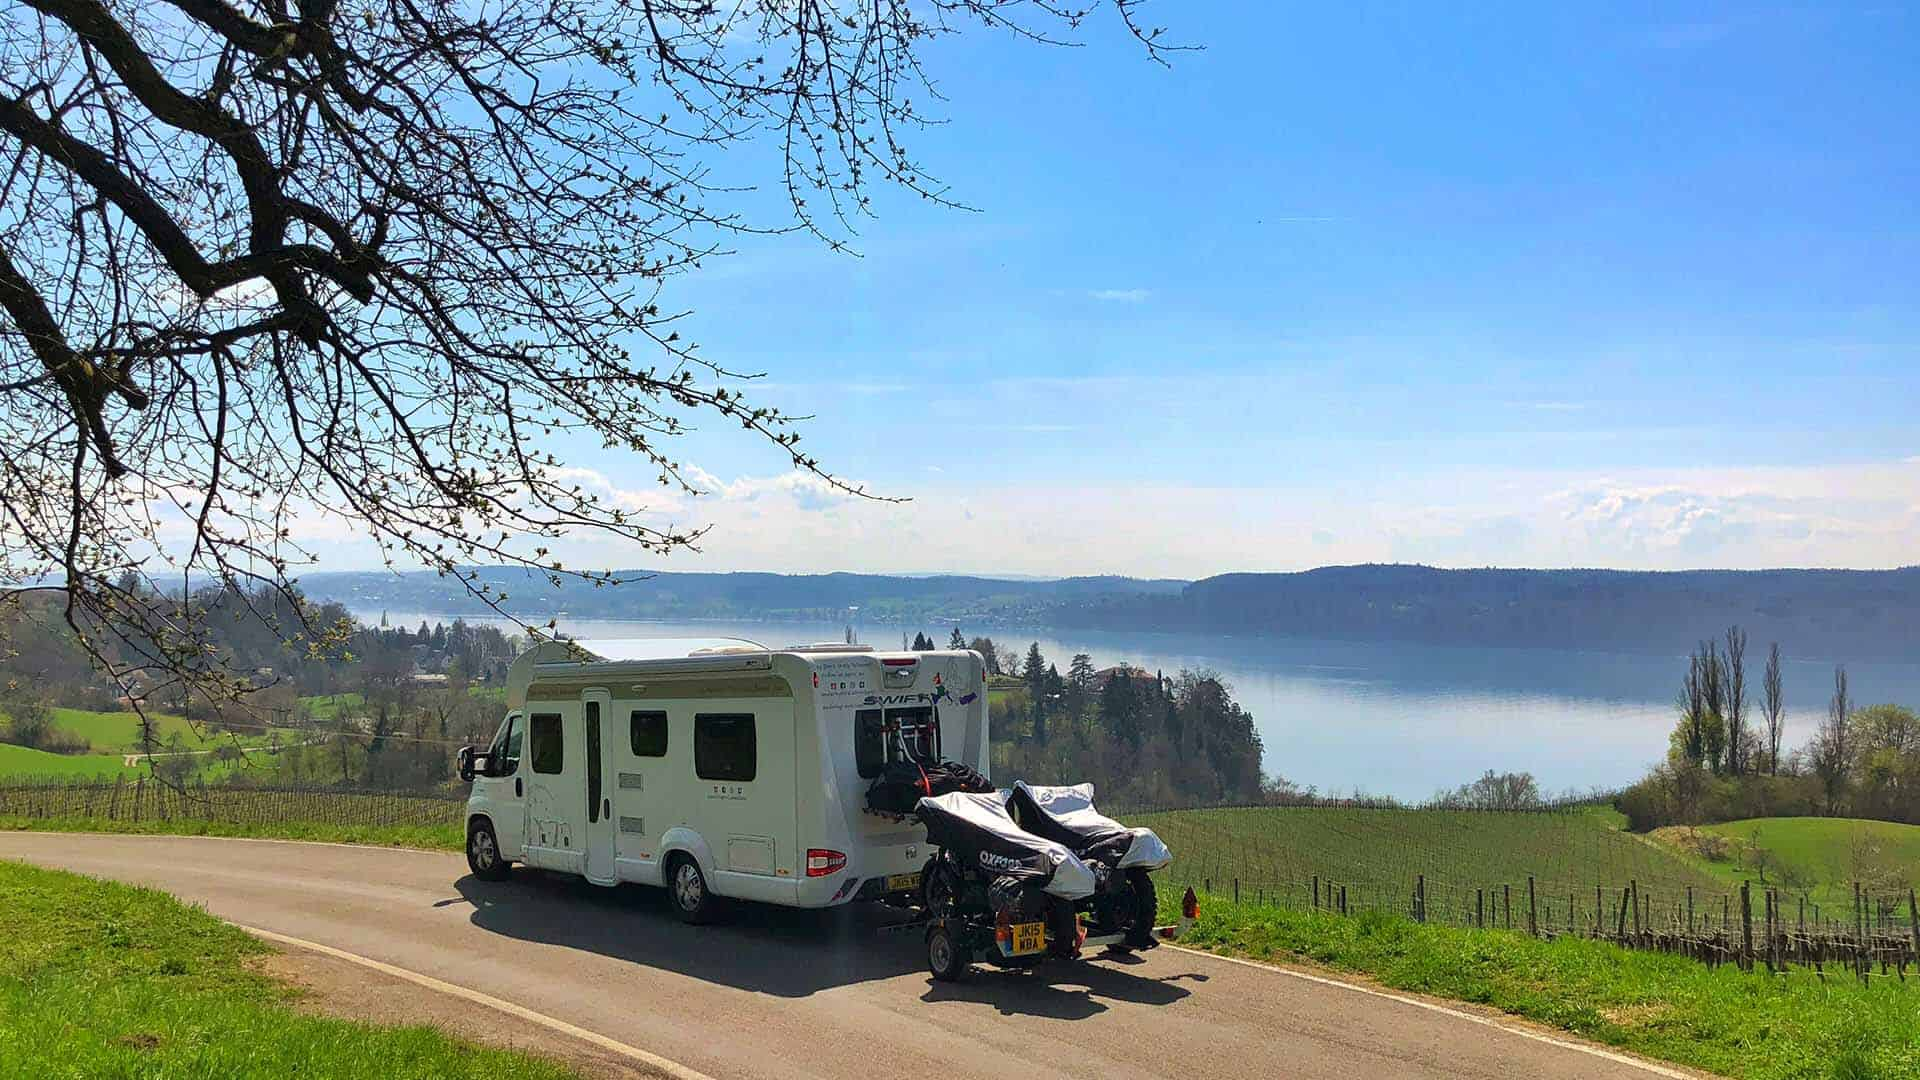 Motorhome Life- our top 10 tips & tricks after our first year of motorhome life and touring Europe in our motorhome. #motorhome #tour #travel #blog #wanderingbird #motorhomelife #tips #tricks #ideas #vanlife